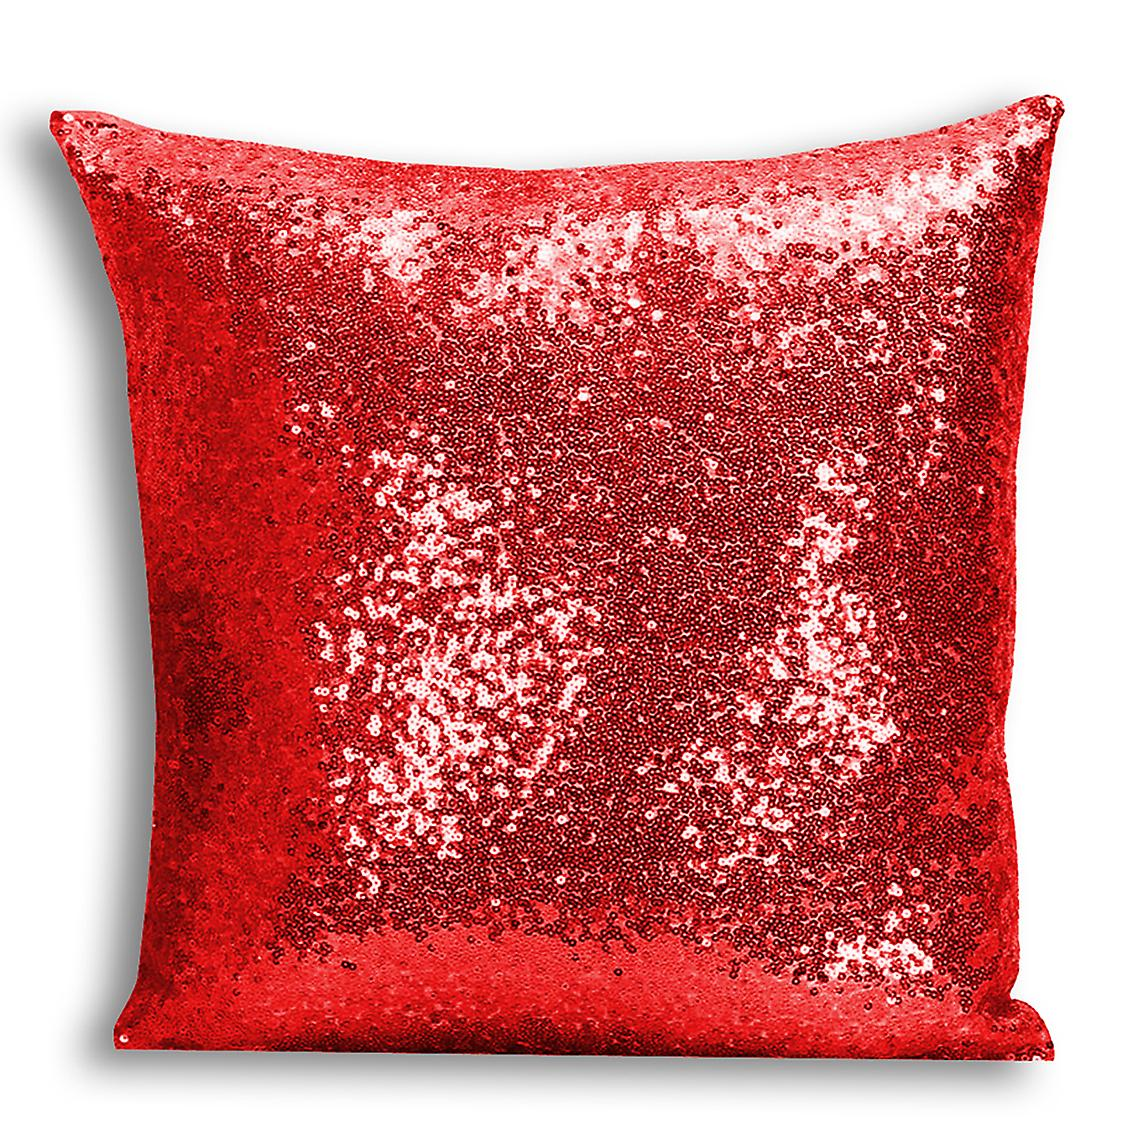 For Inserted With Decor Design Red tronixsUnicorn Home Sequin Cover Printed 8 I CushionPillow eDY2IHbWE9